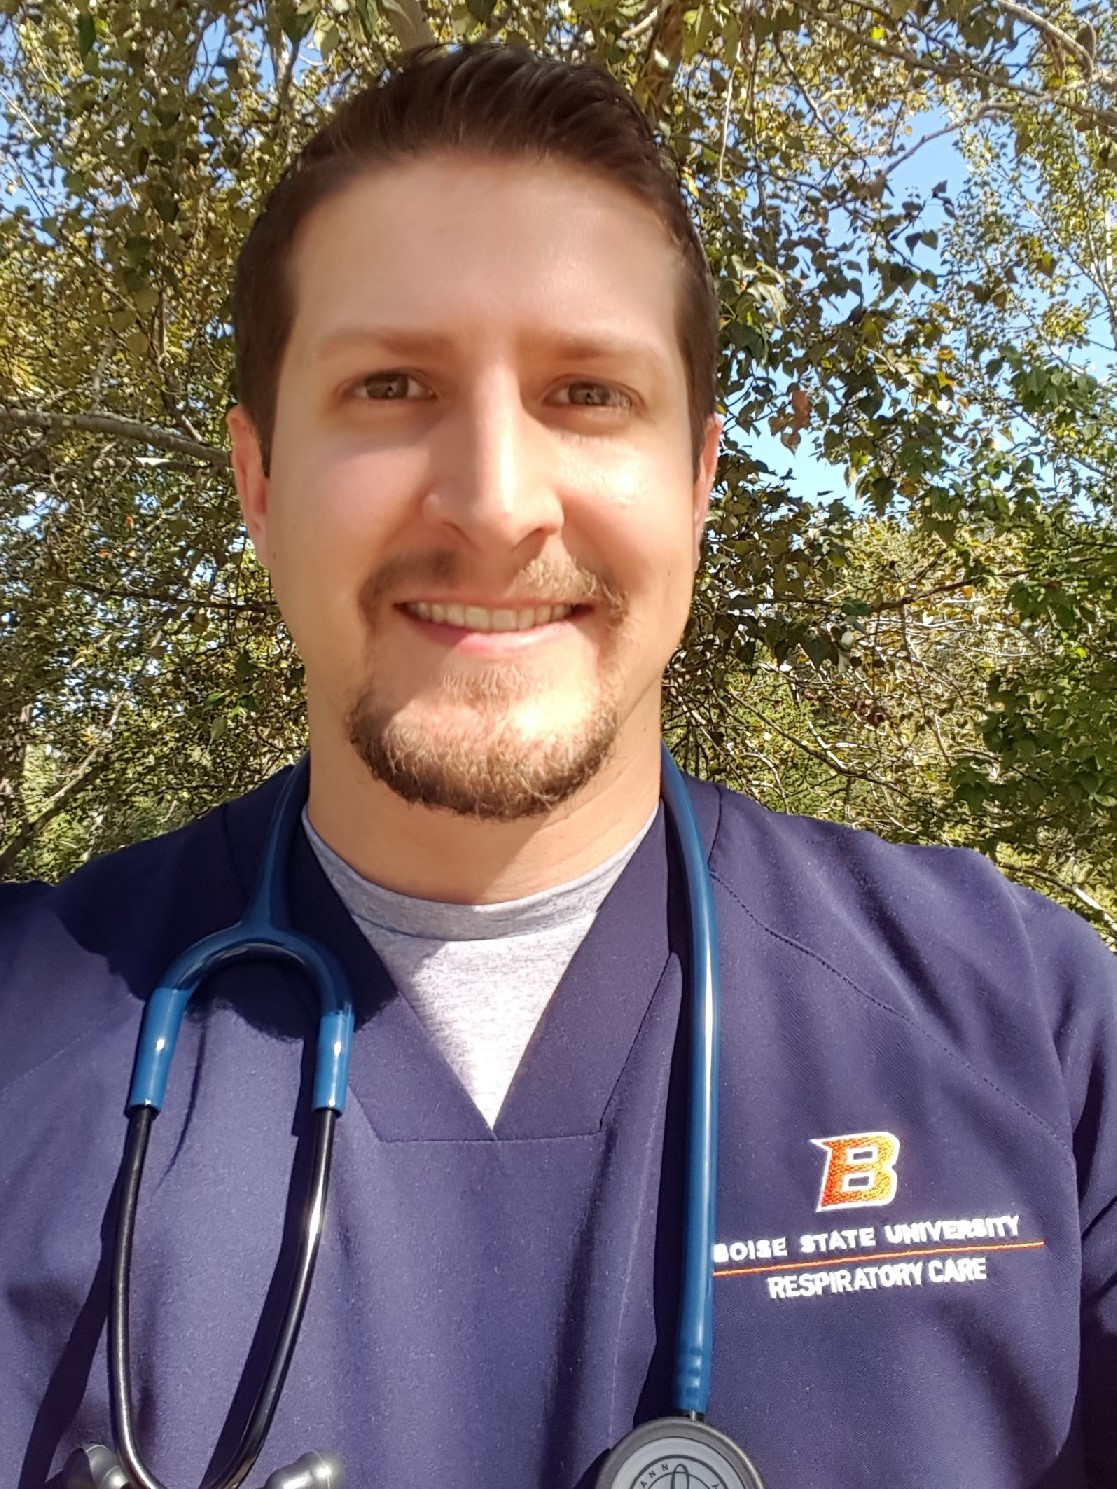 Jory Reynolds in his Respiratory Care scrubs